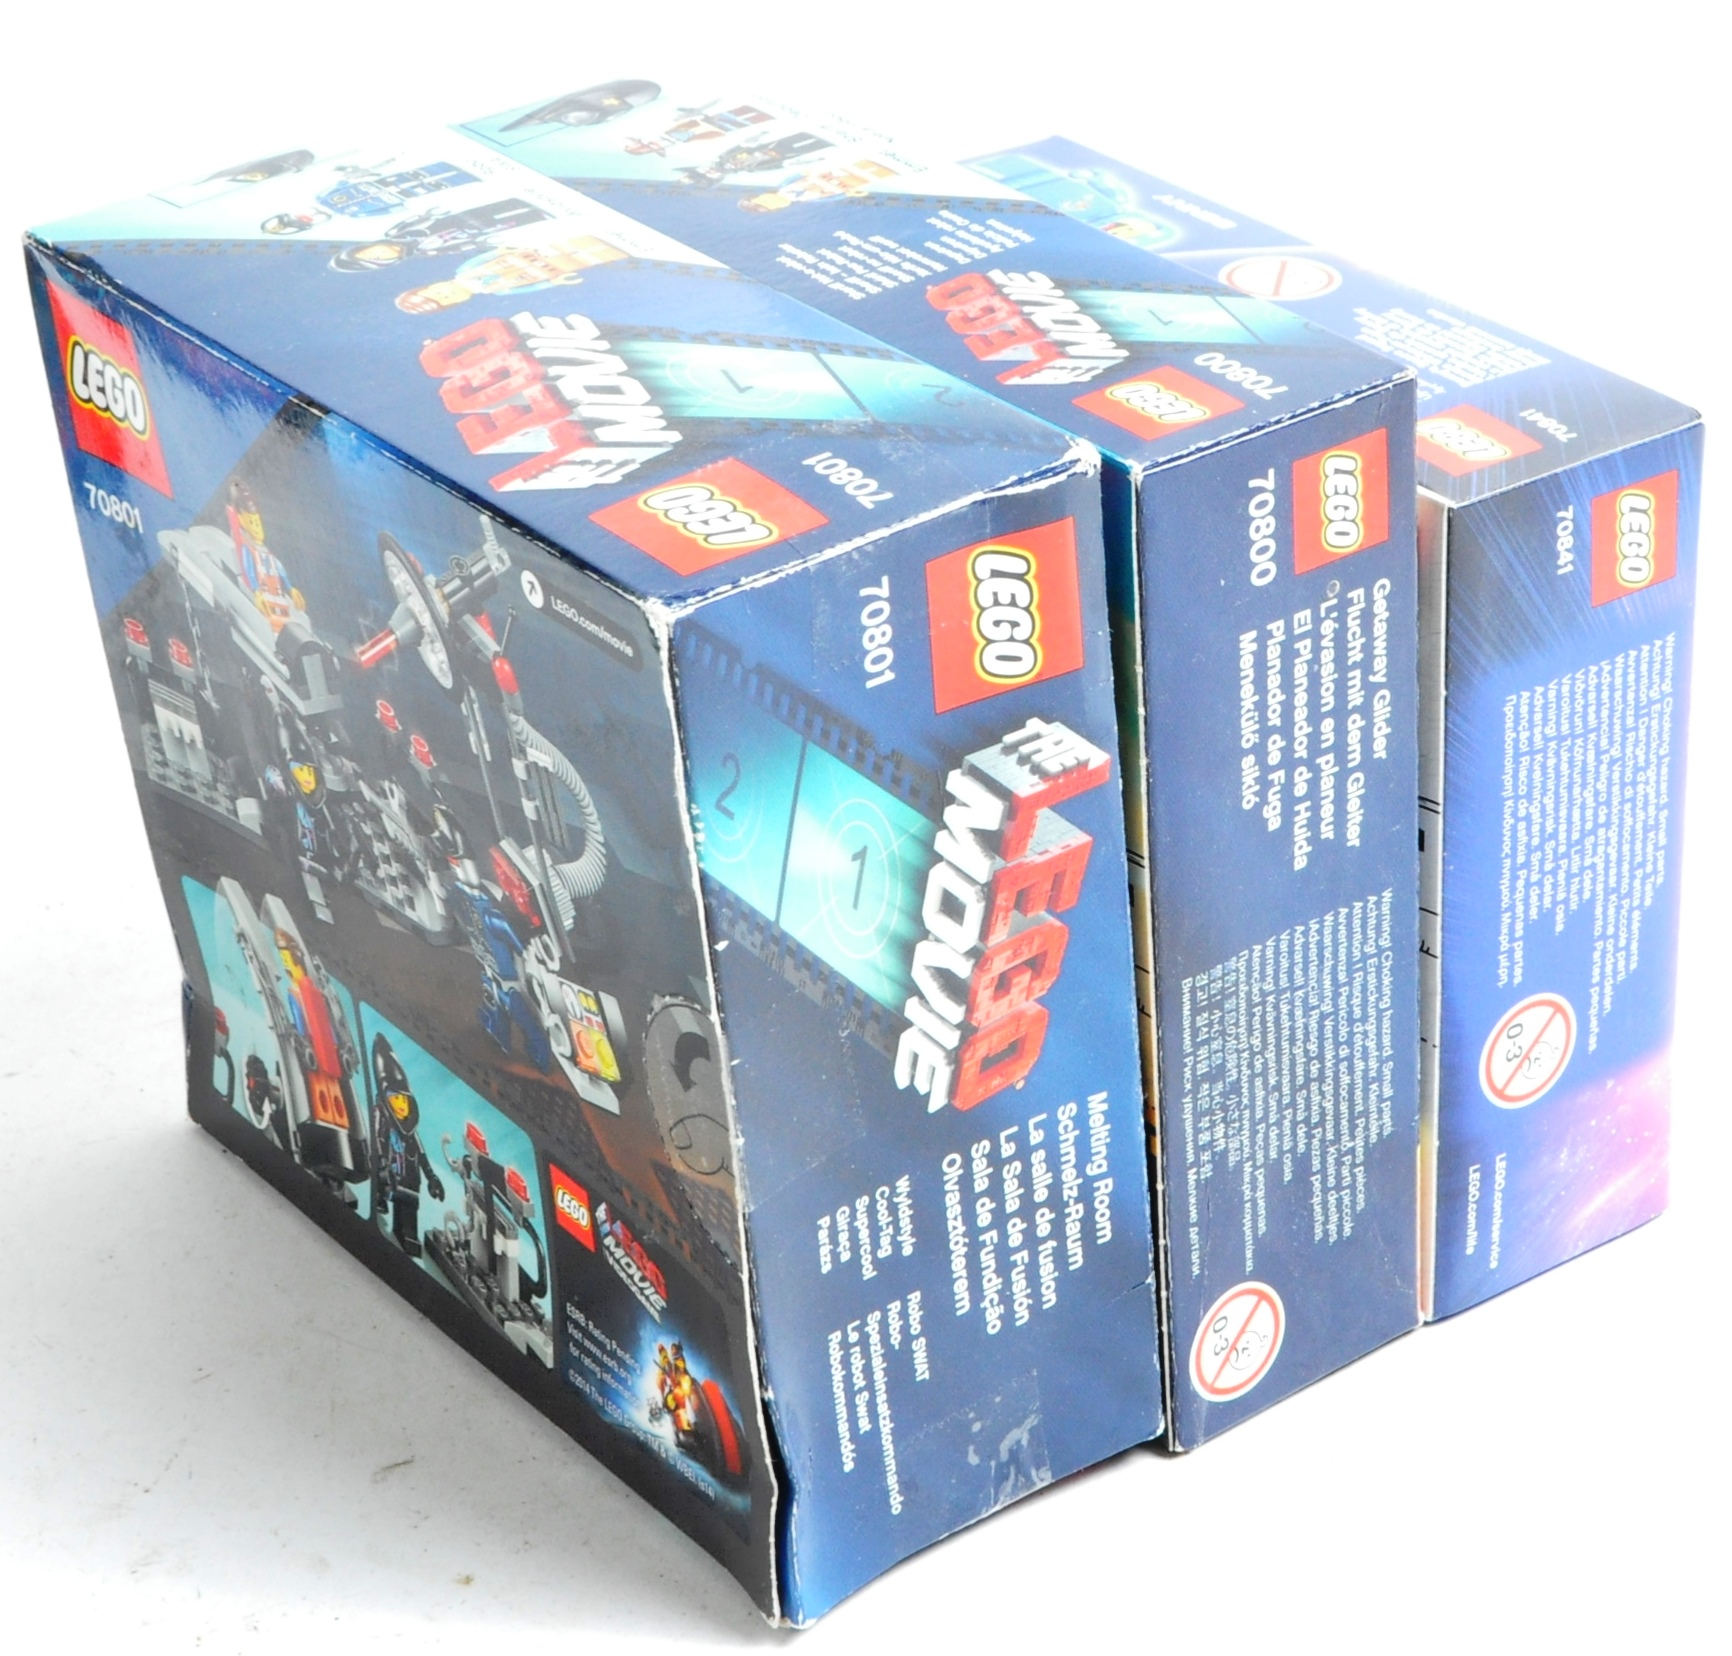 LEGO SETS - THE LEGO MOVIE - COLLECTION OF X7 LEGO MOVIE SETS - Image 11 of 17